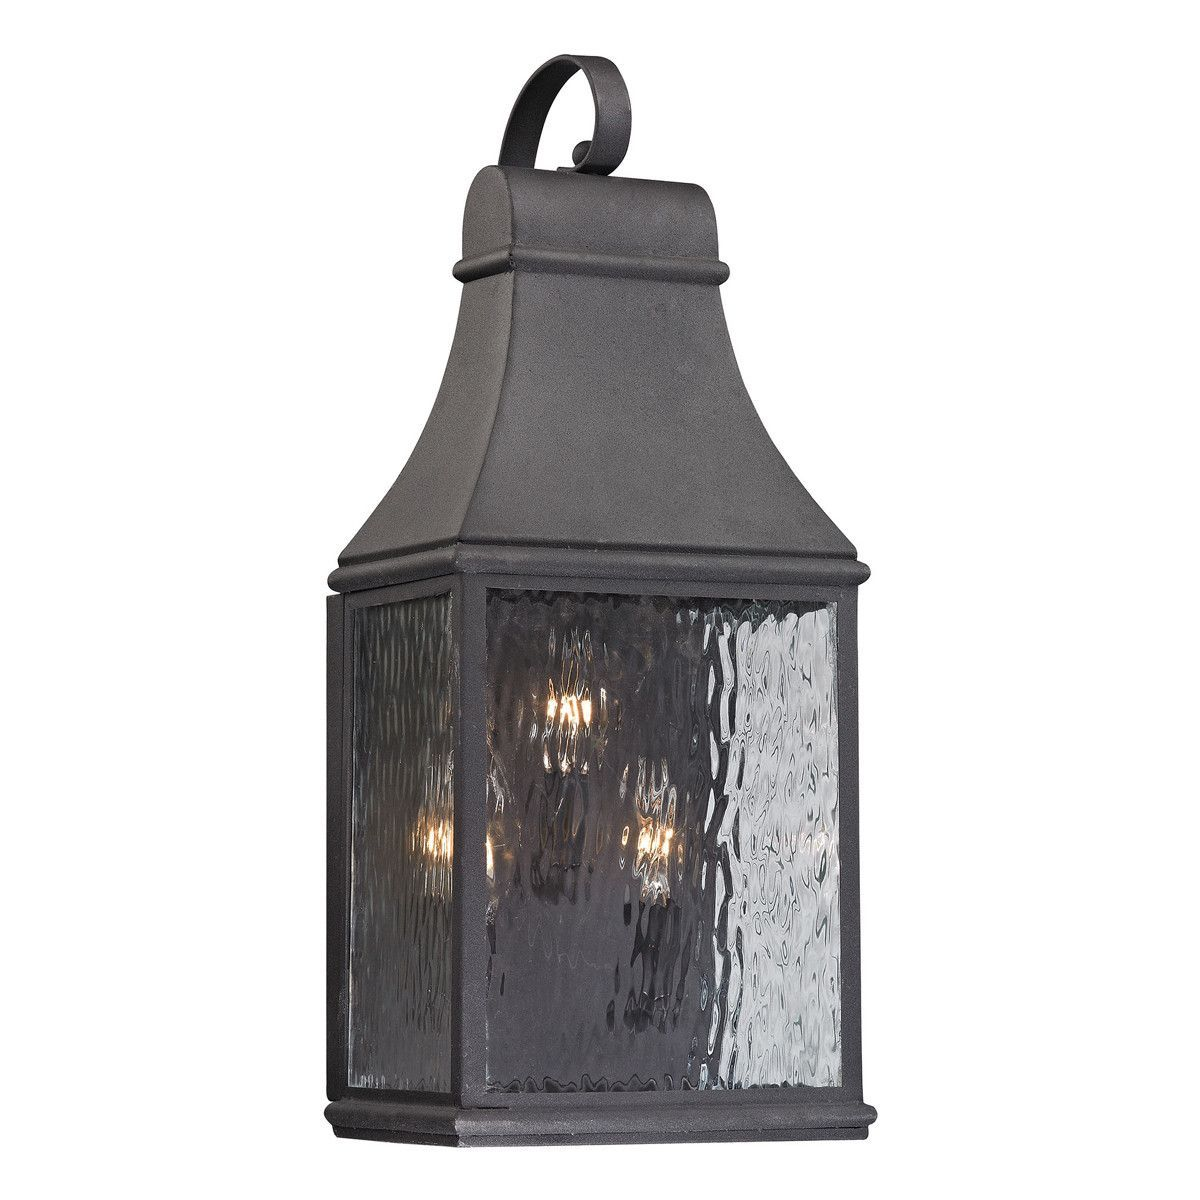 Forged jefferson light outdoor wall sconce in charcoal products